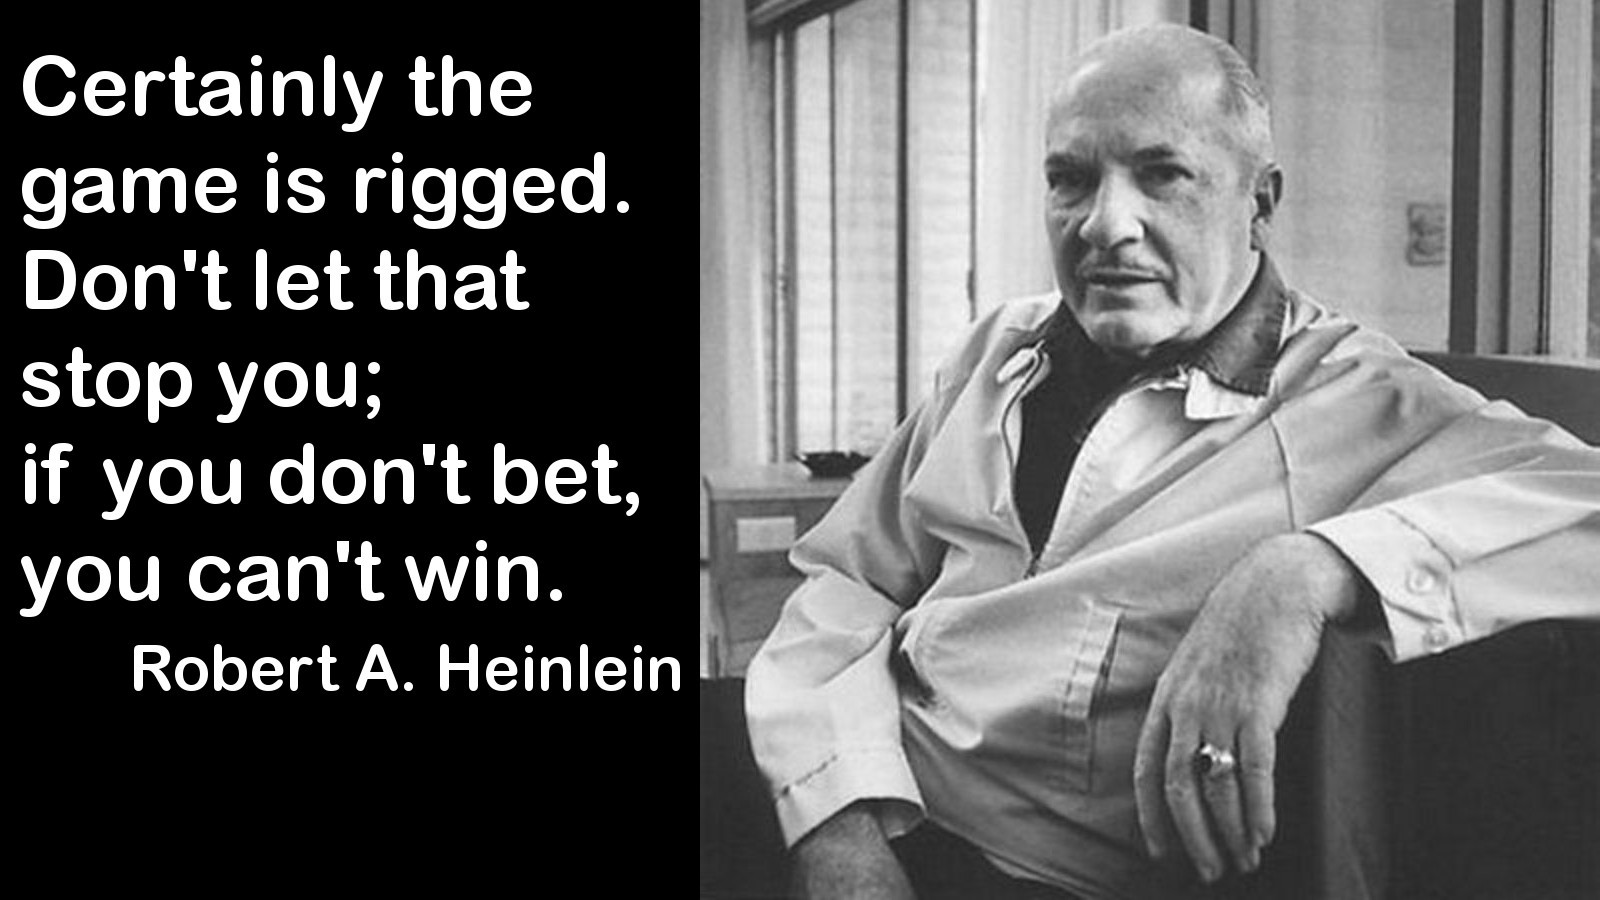 Certainly the Game is Rigged. Don't Let That Stop You. If you Don't Bet, You Can't WIN - Lazarus Long